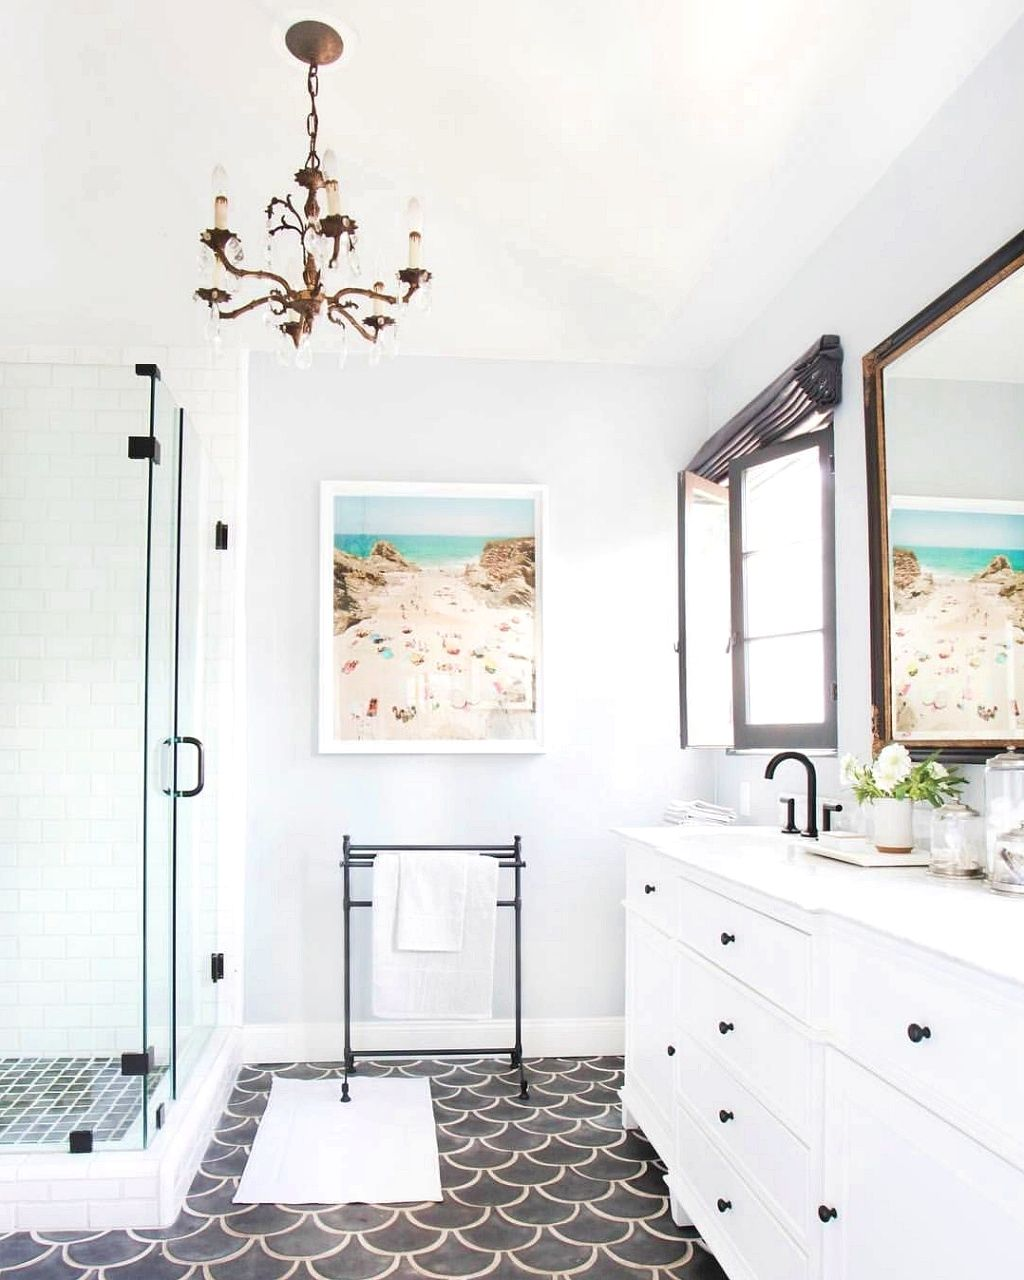 Bathroom design guide you could possibly believe a certain skill set is necessary to make